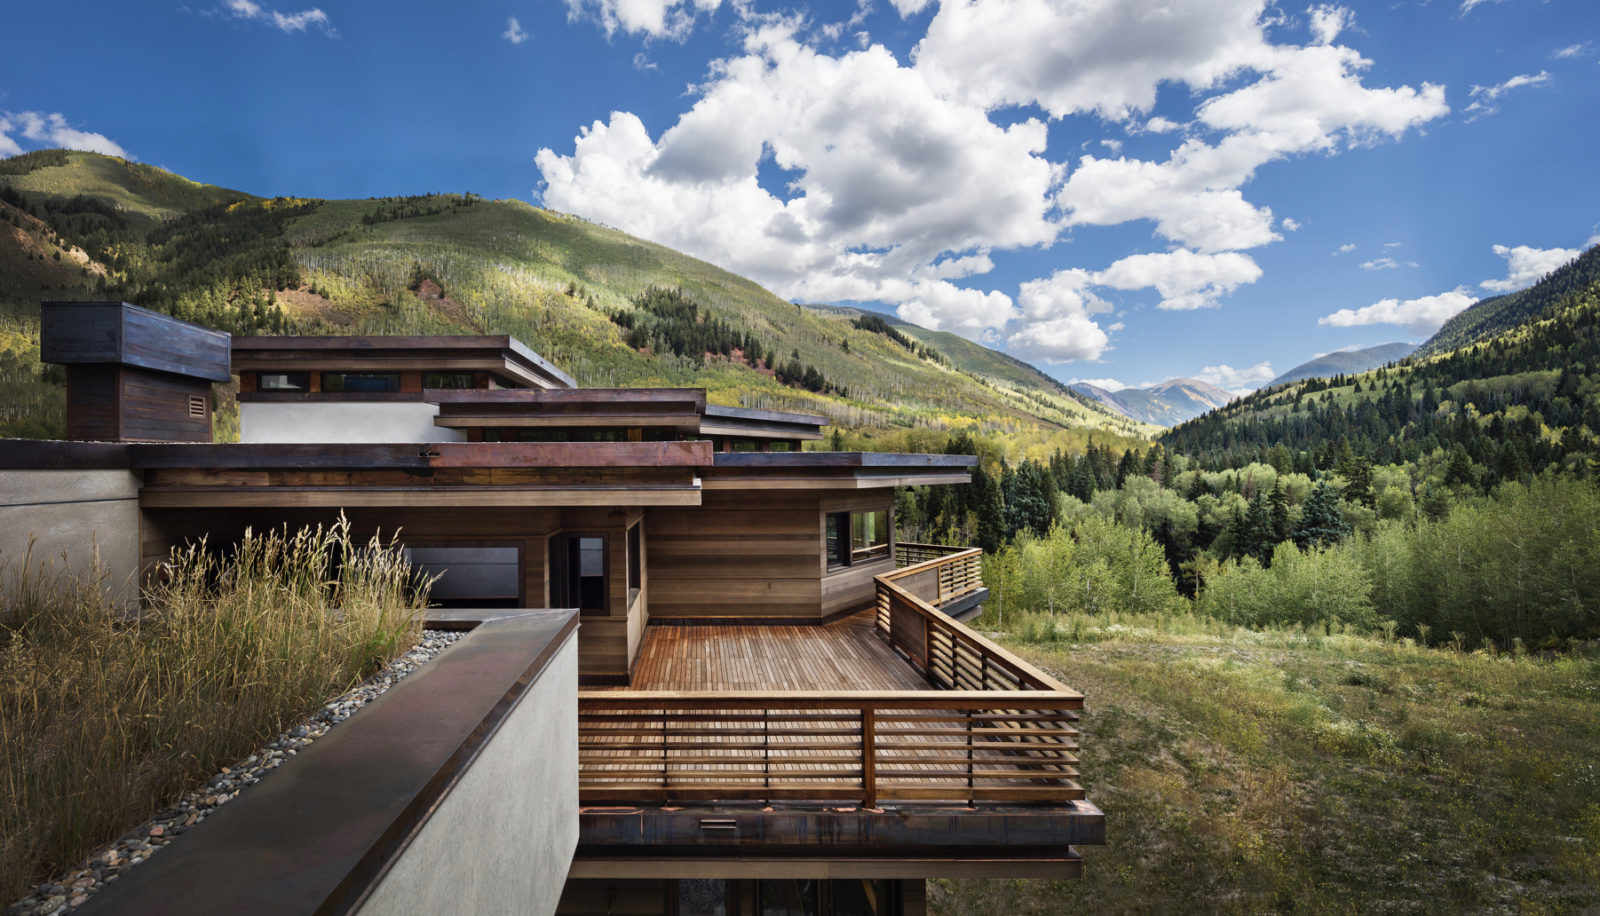 Aspen mountain, modern architecture and green roof landscaping, Conundrum Creek and Castle Creek Valley